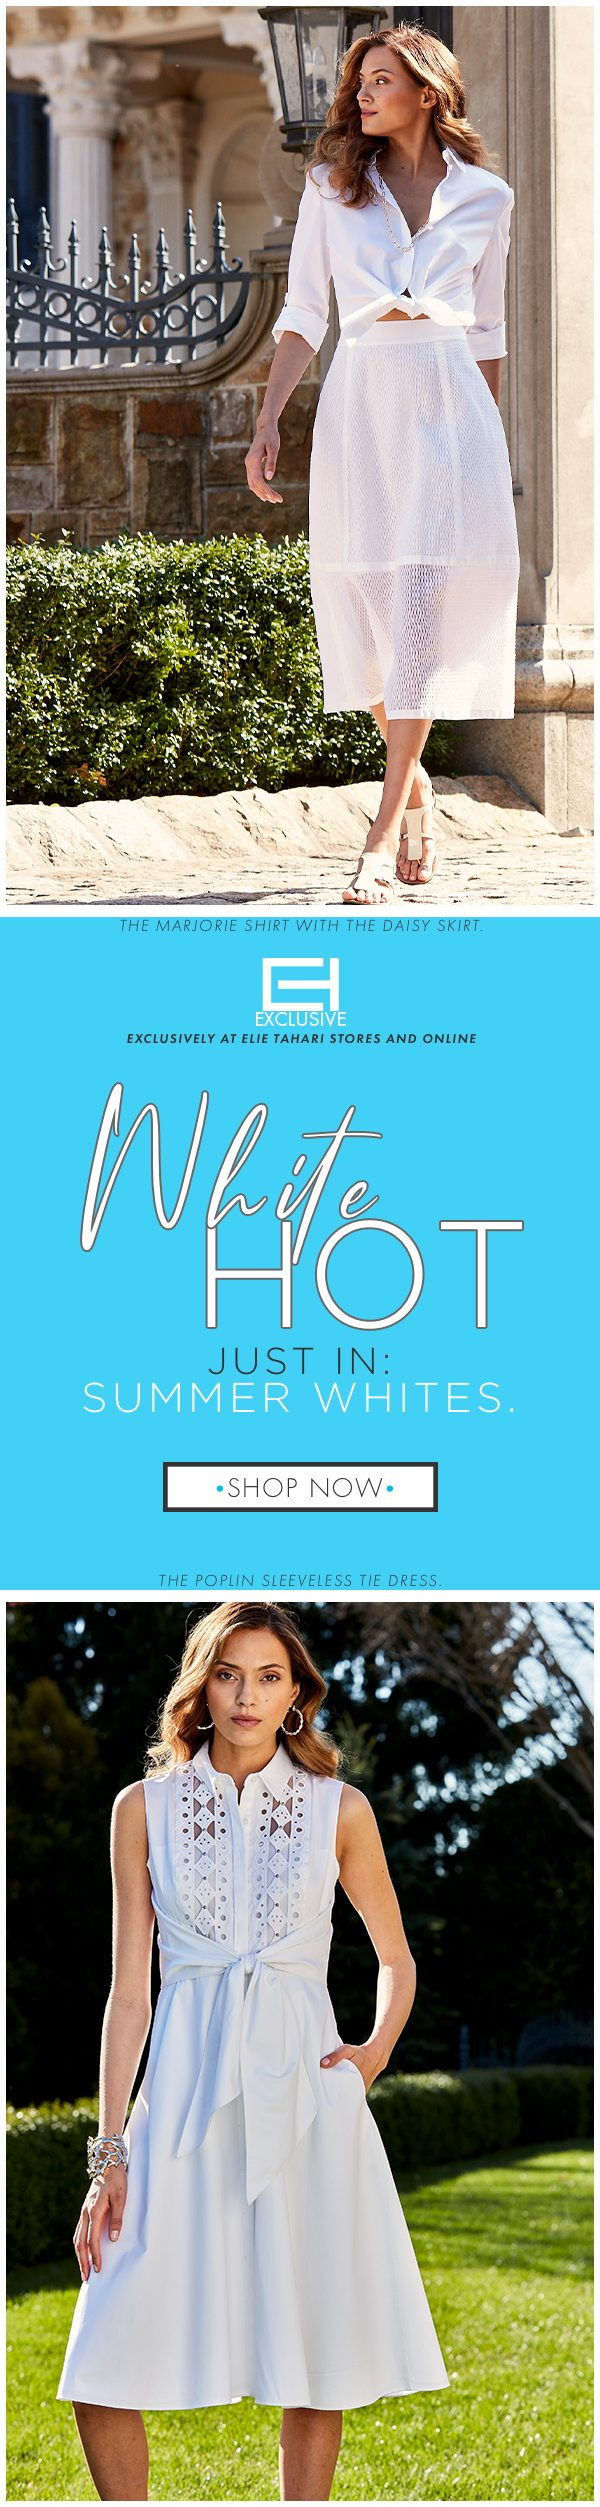 White Hot - Just in Summer